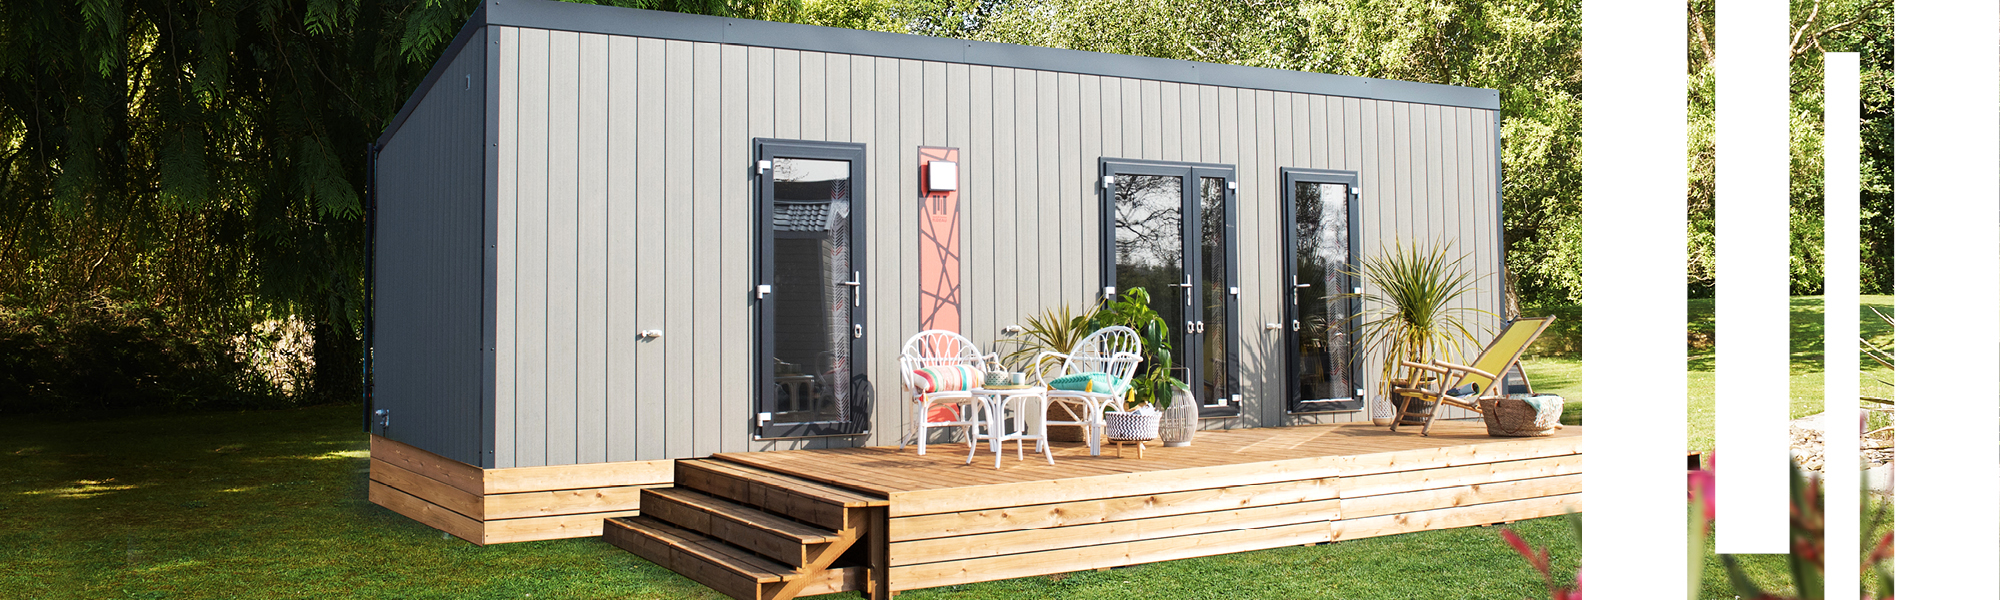 Actu collection 2020 mobil home